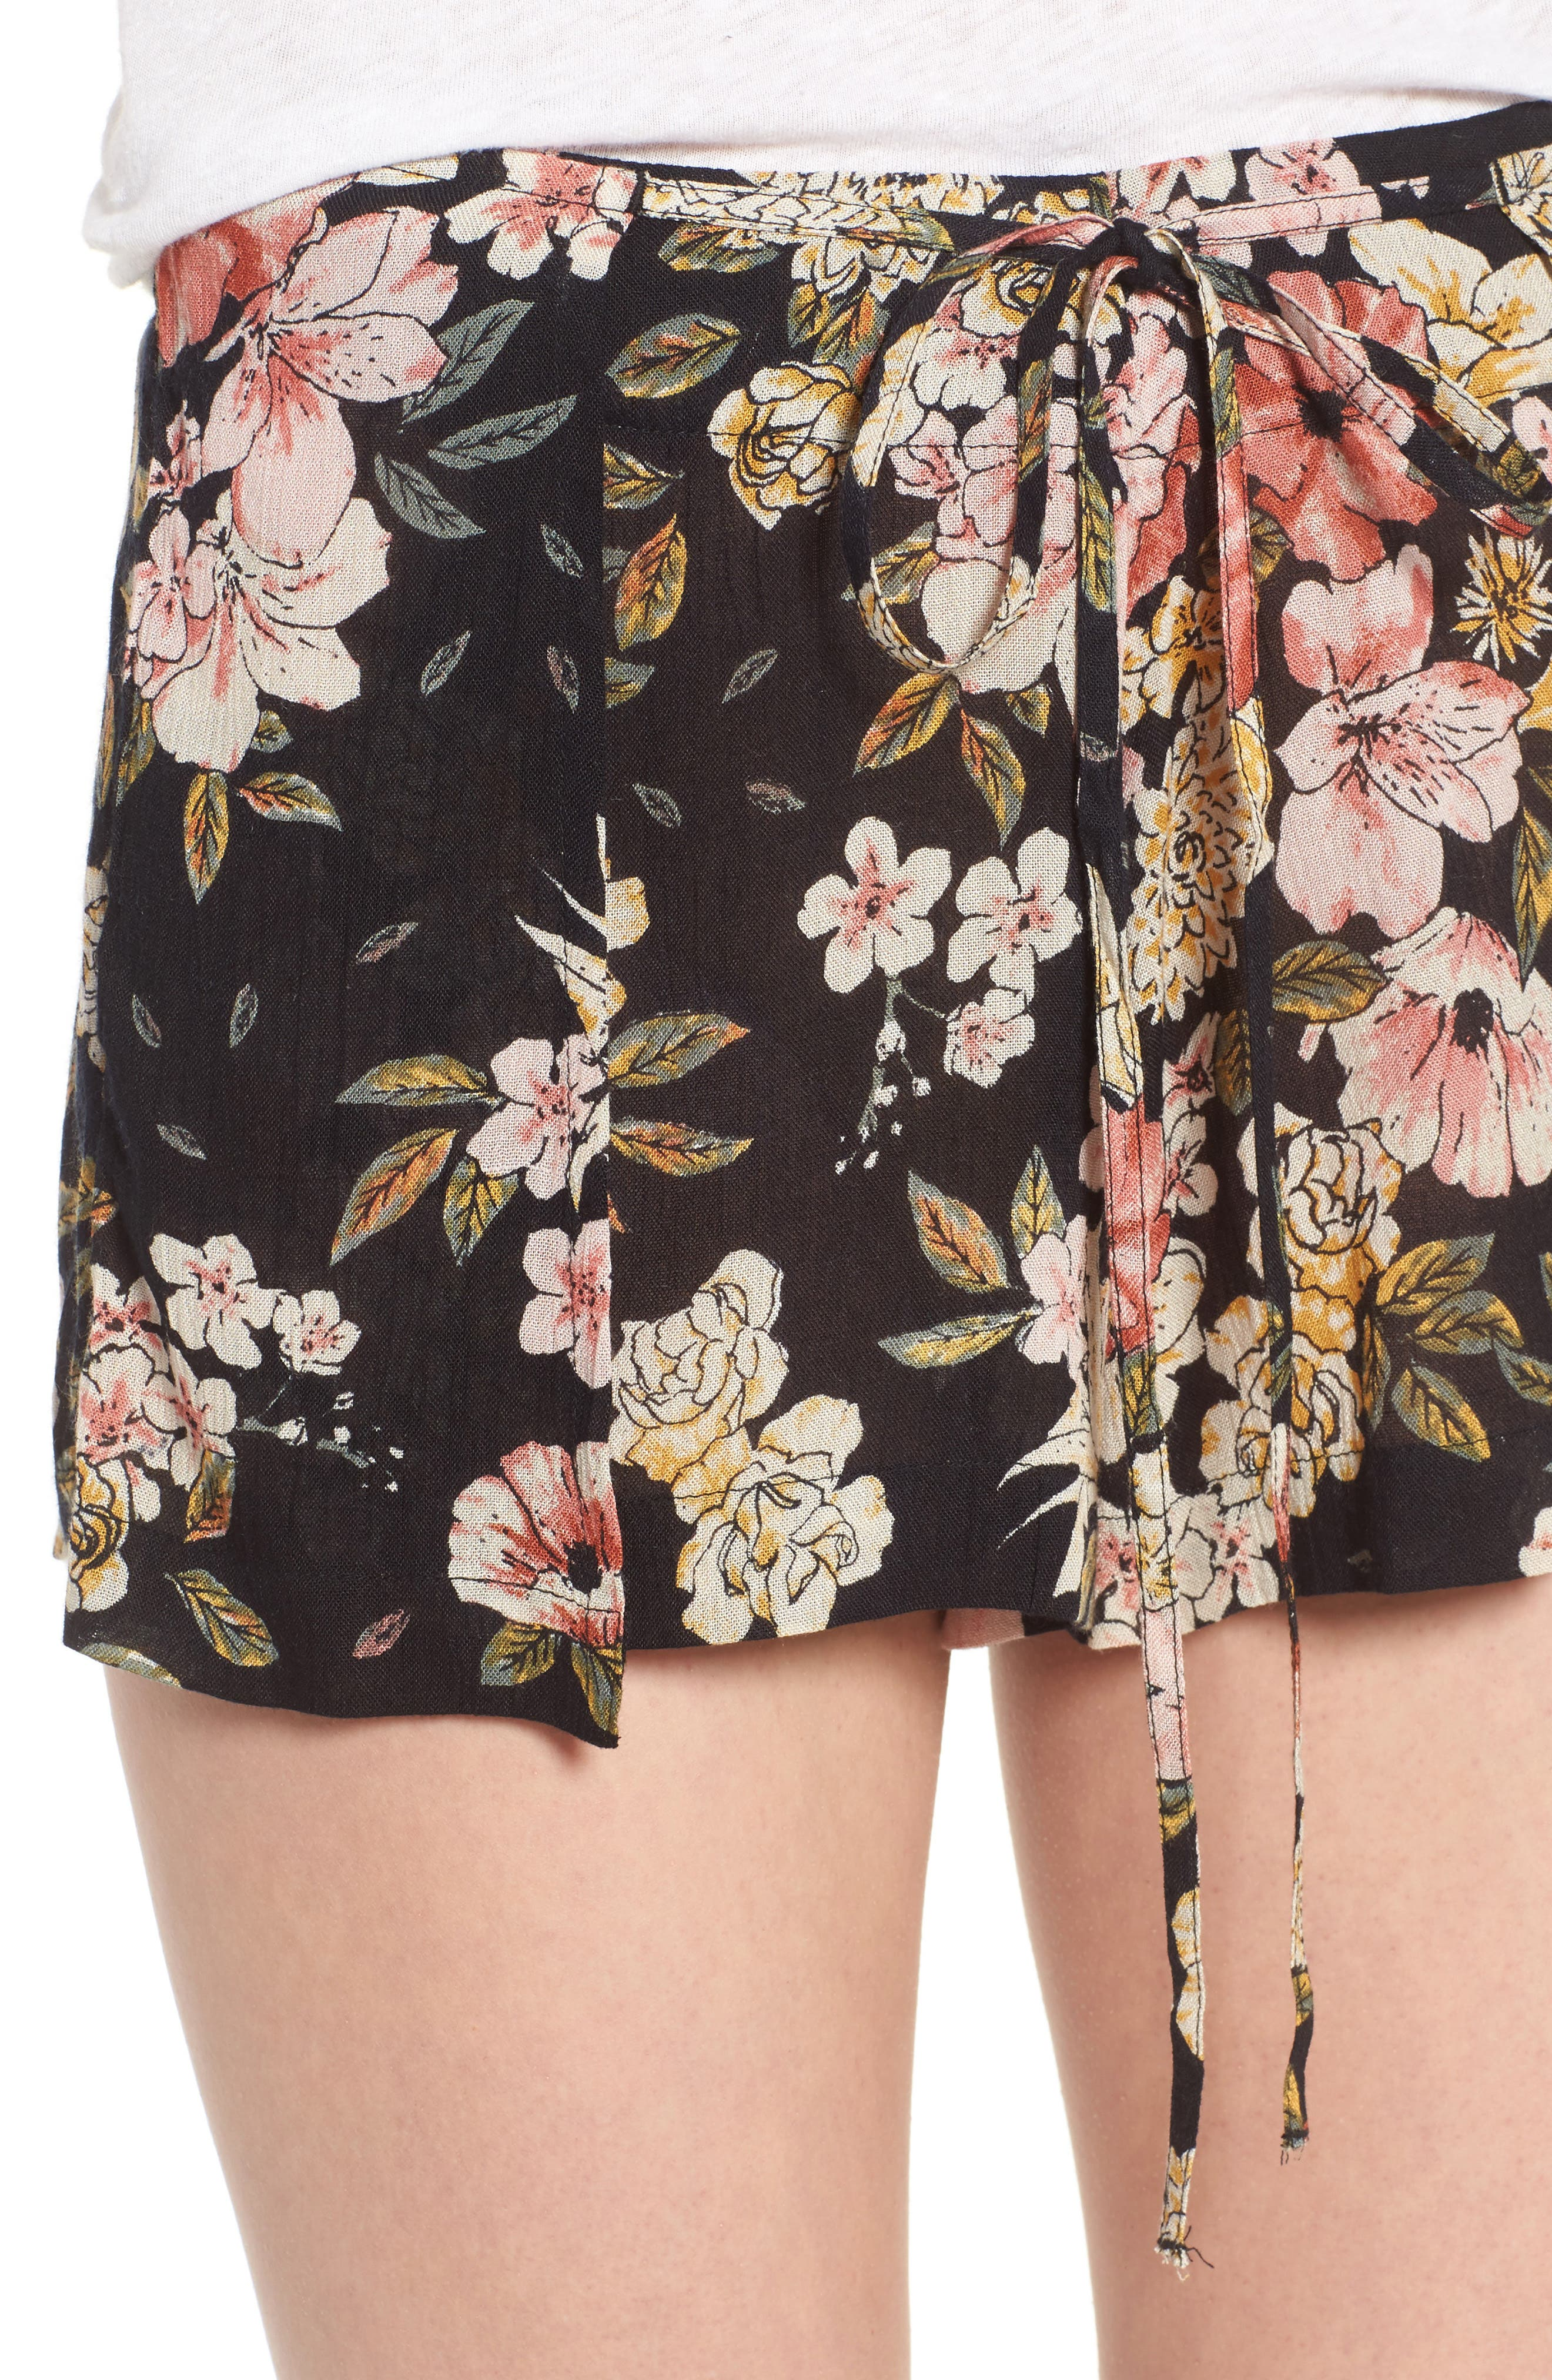 Trippy Day Floral Print Shorts,                             Alternate thumbnail 4, color,                             001